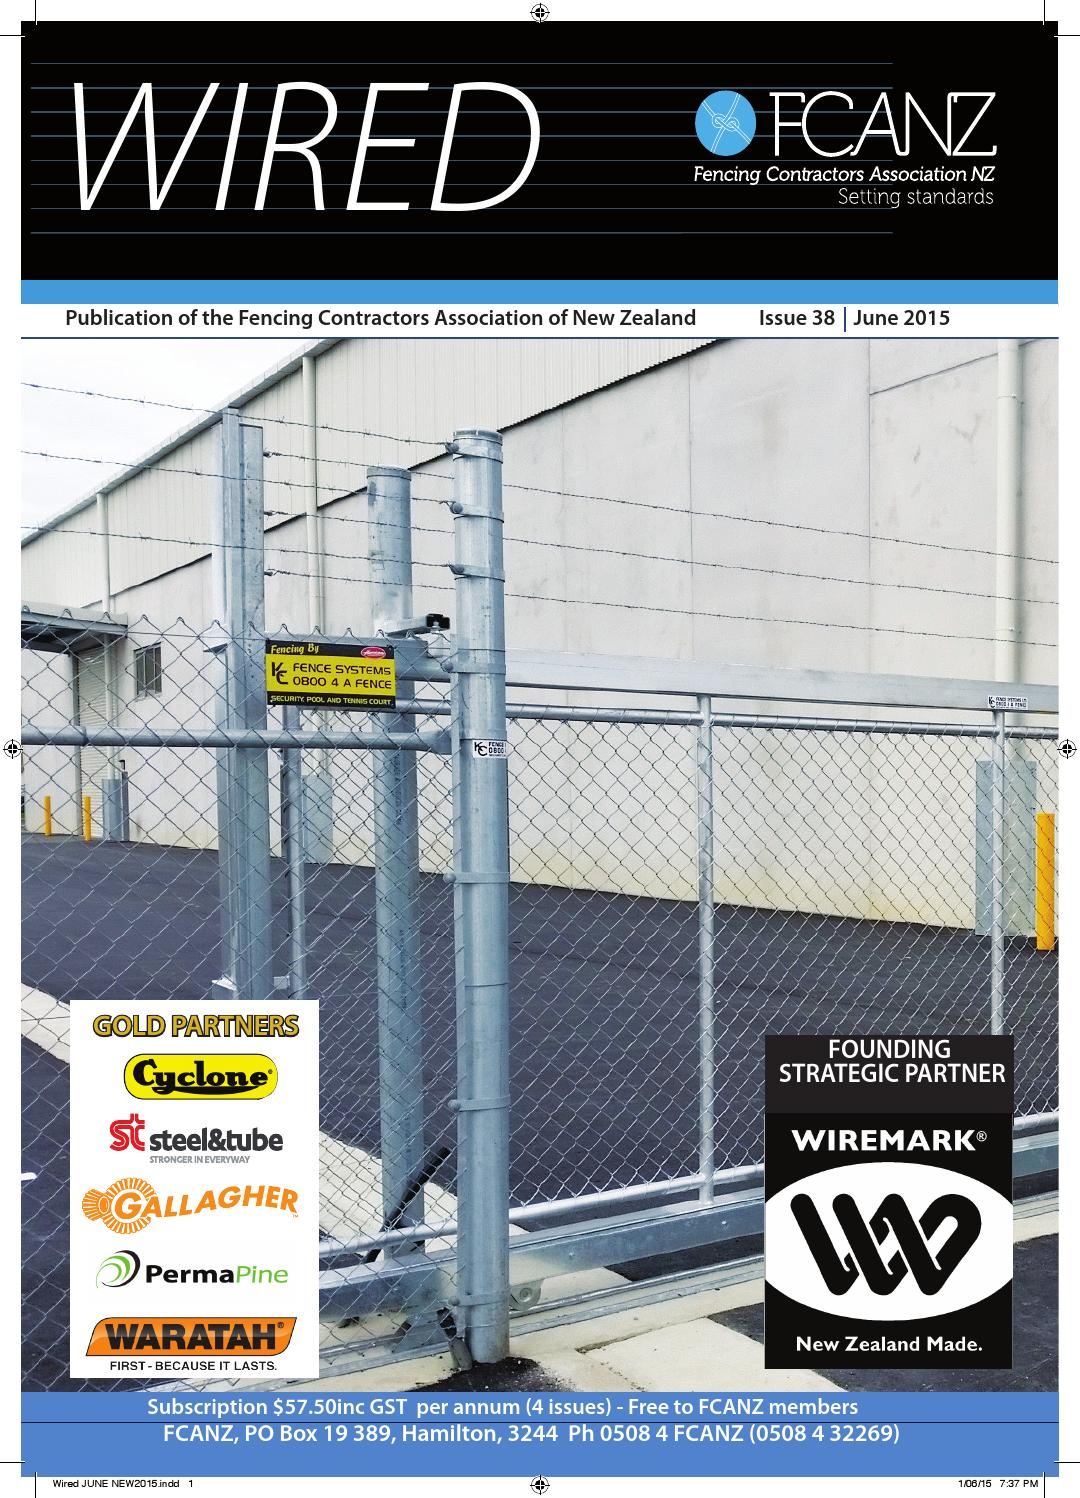 Wired June 2015 by Fencing Contractors Association New